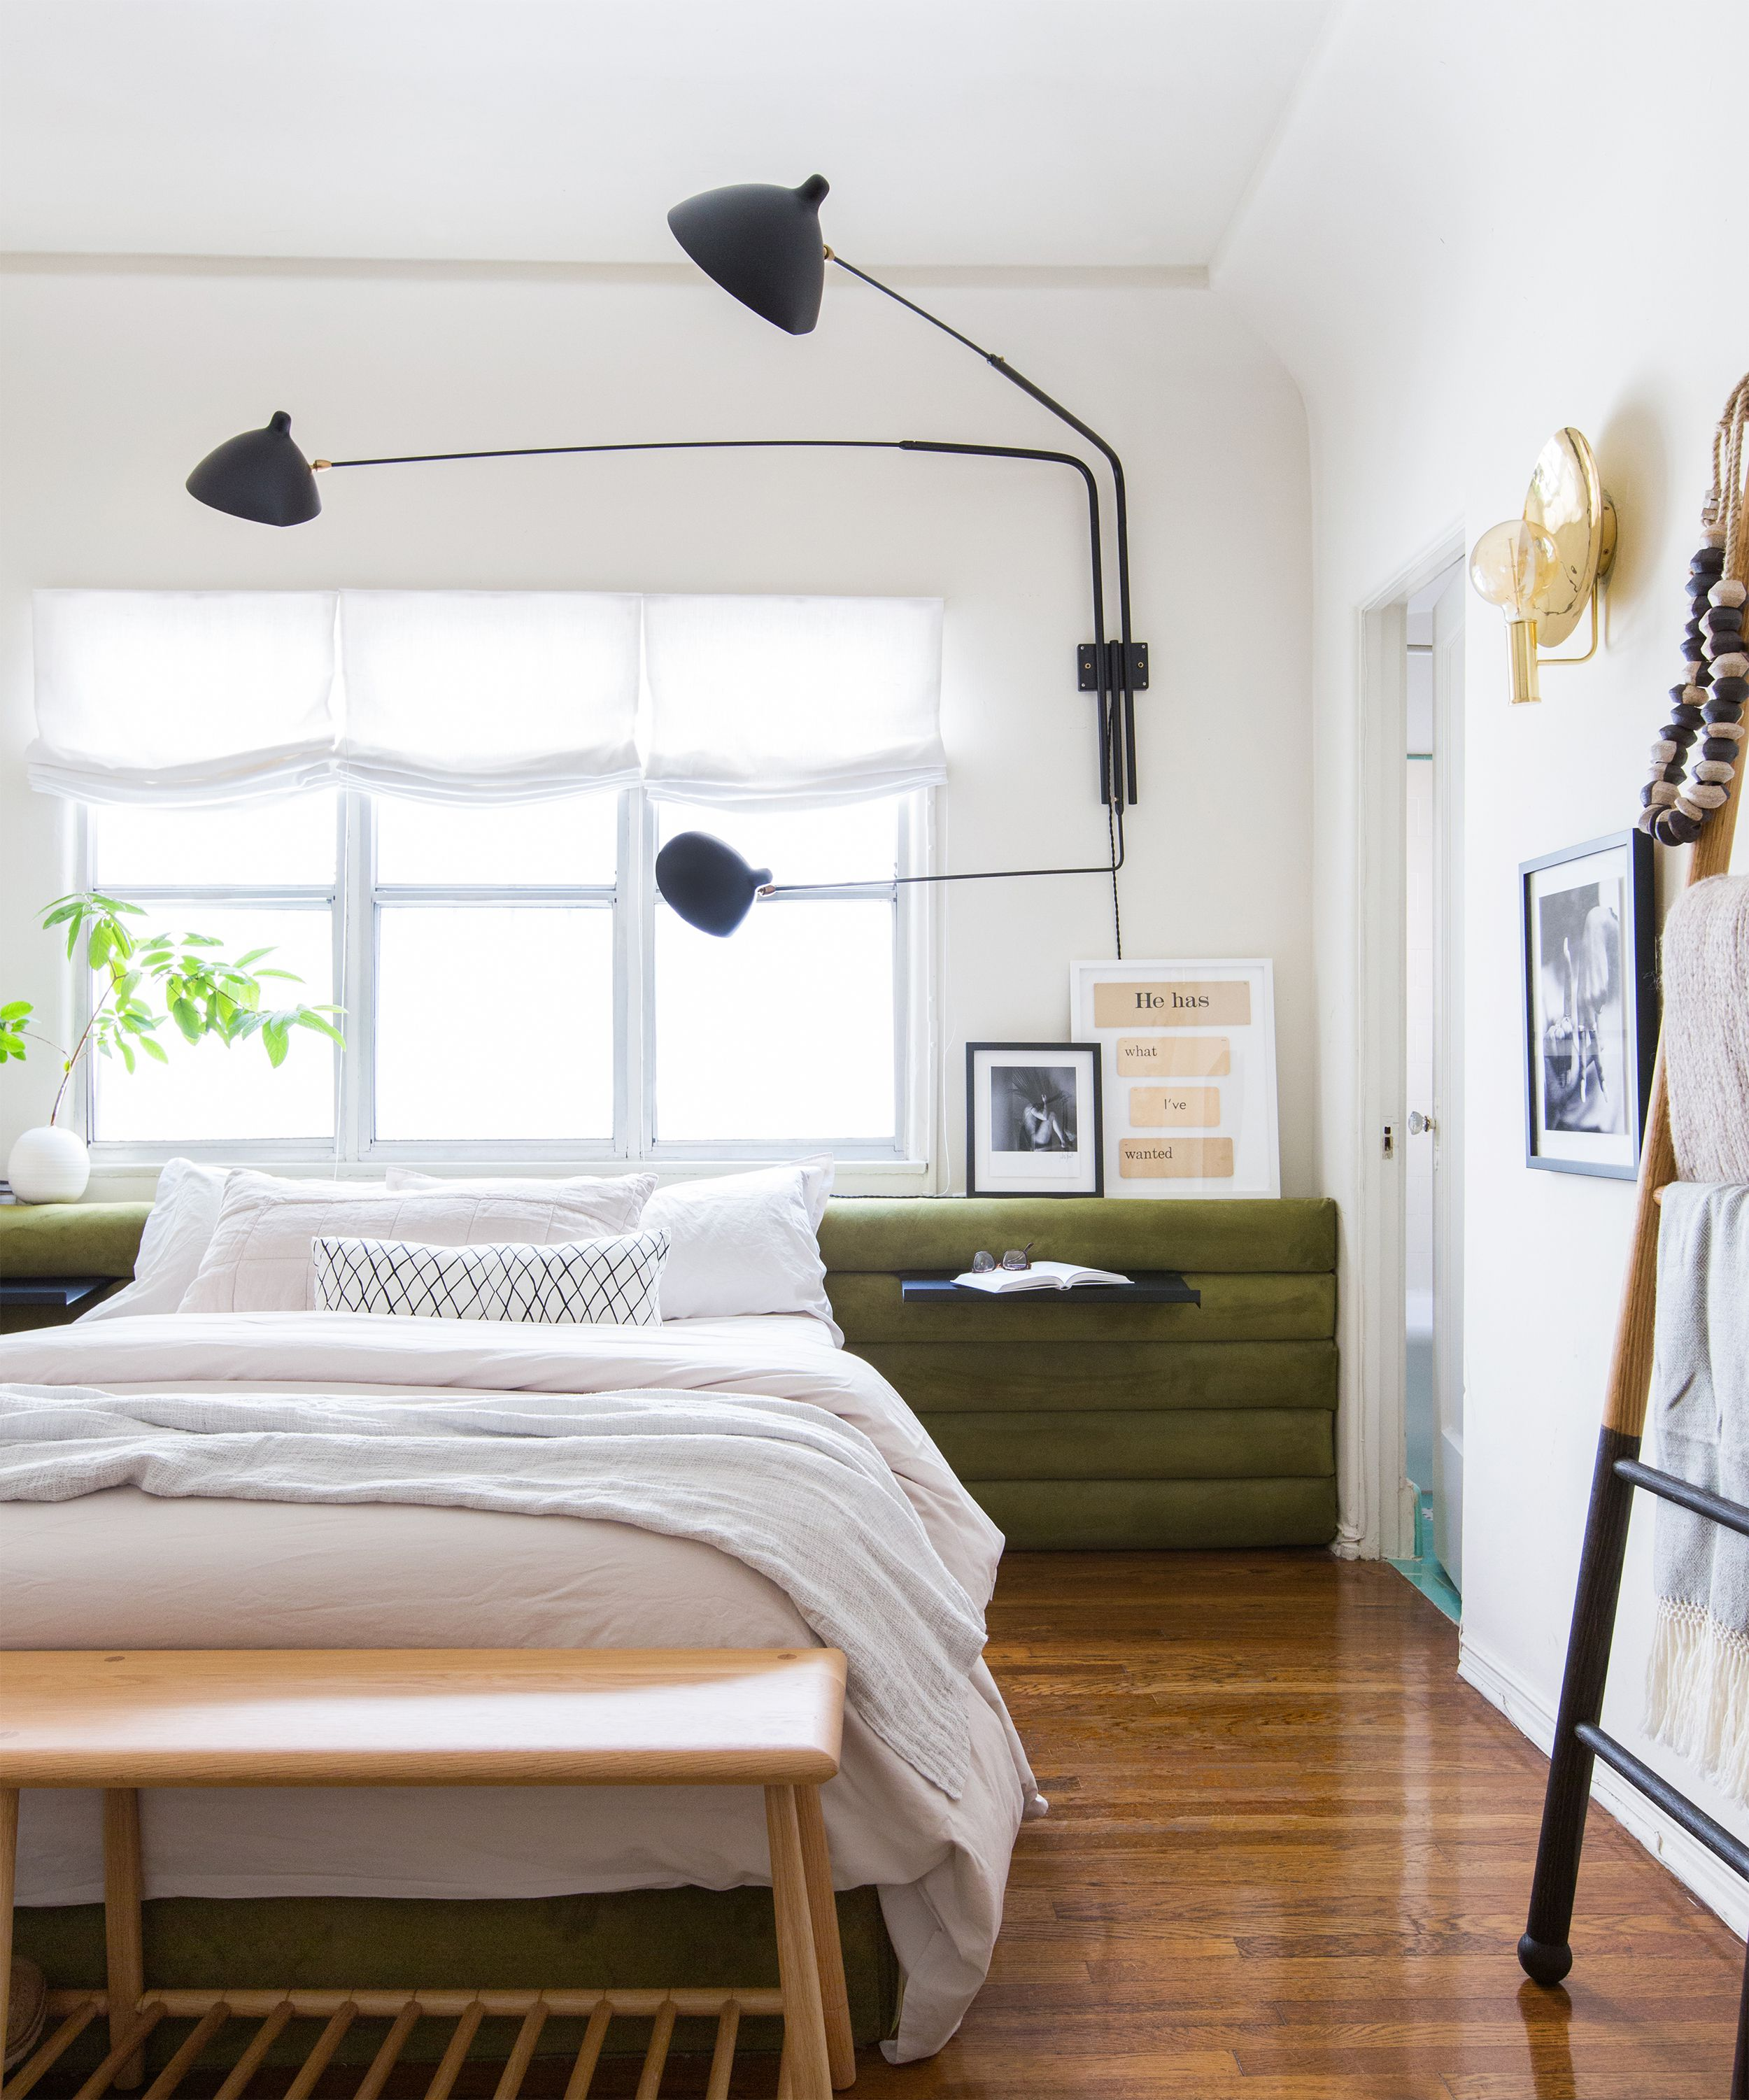 20 Stylish Headboard Ideas That Will Make Your Bed Even More Inviting